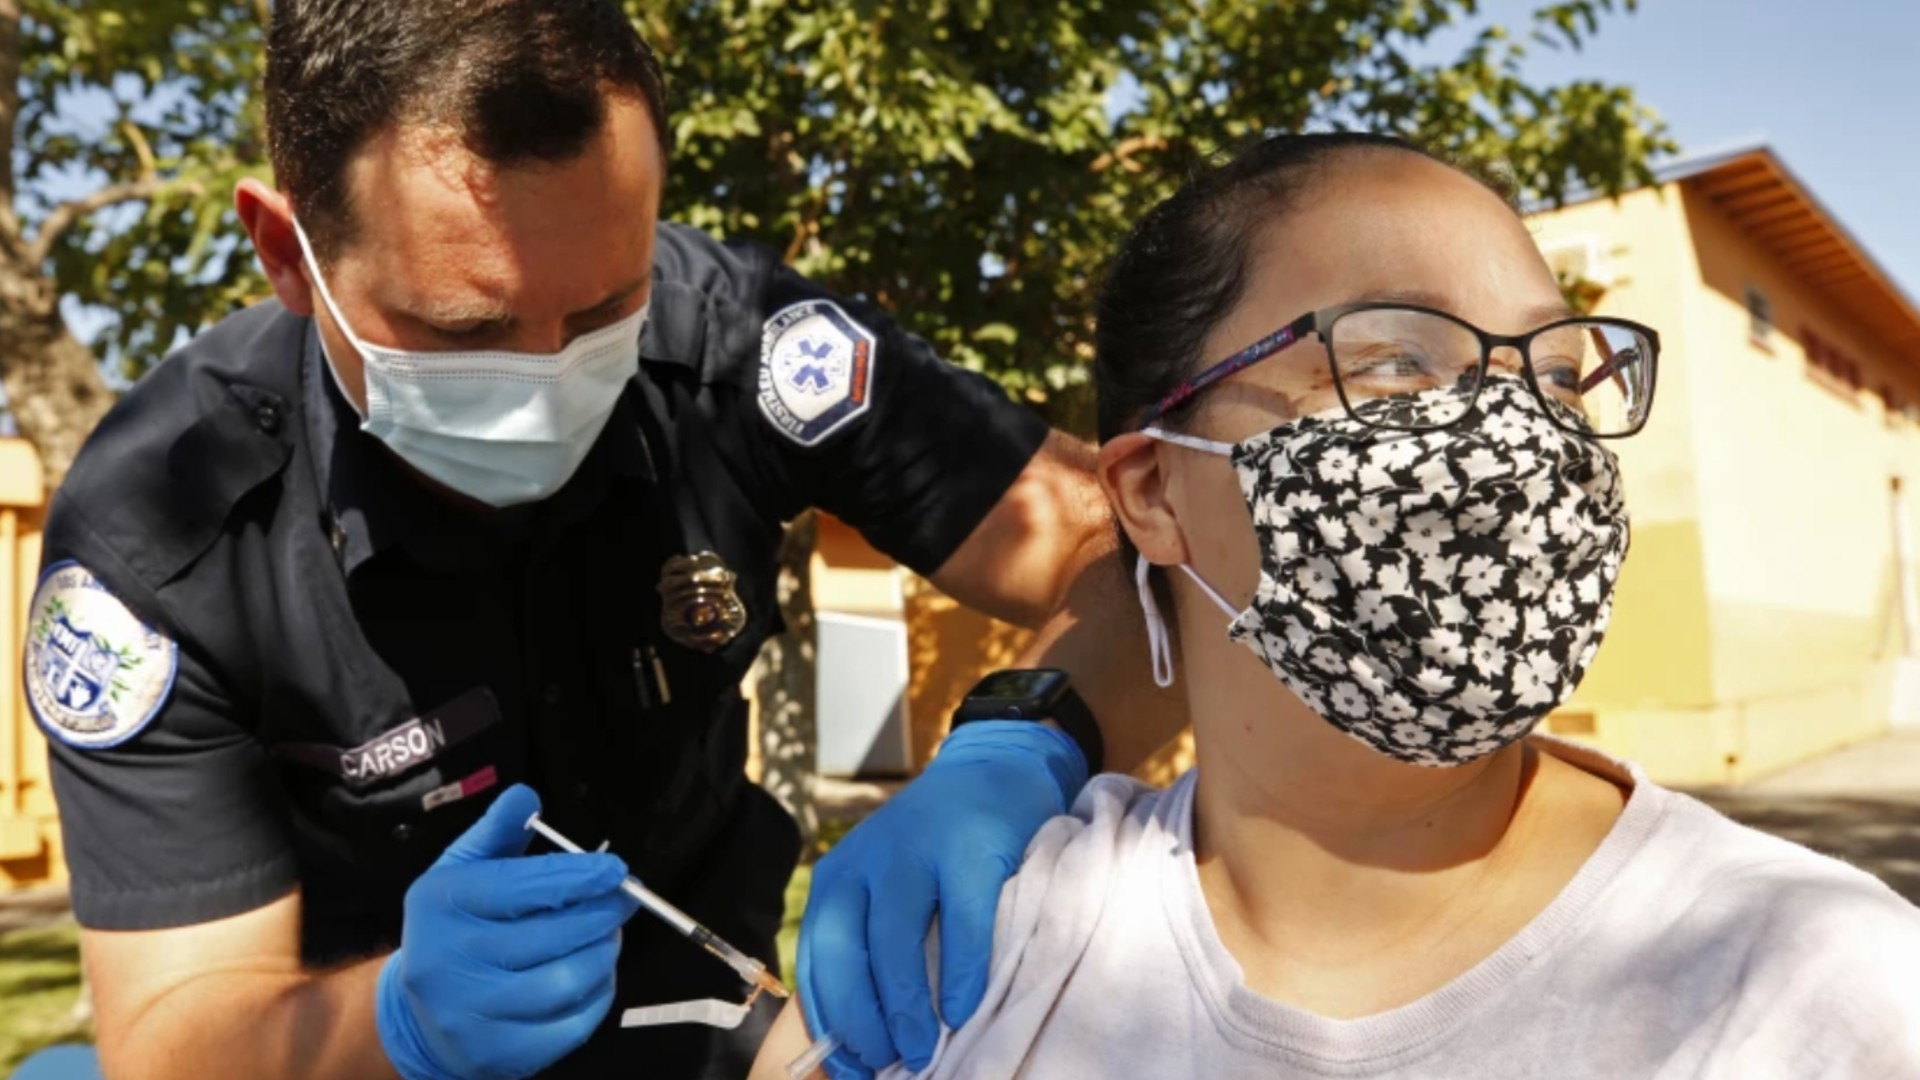 Diana Gomez receives a Pfizer COVID-19 vaccine from Kyle Carson, an EMT with FirstMed Ambulance Services in Arleta.(Al Seib / Los Angeles Times)